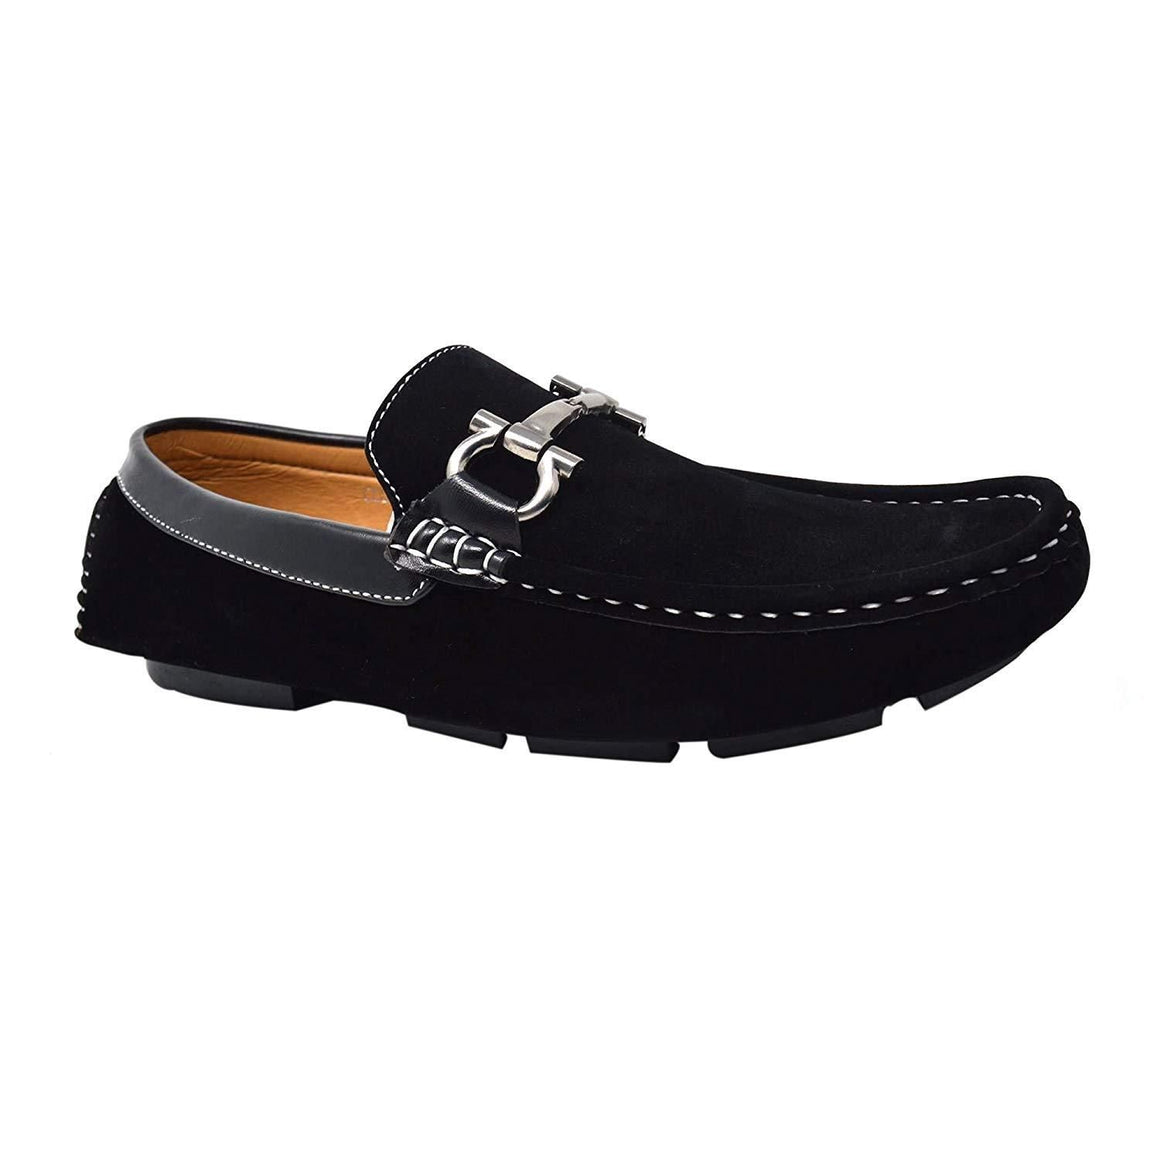 Mens Suede Loafers Black Slip On Driving Moccasins Flat Shoes